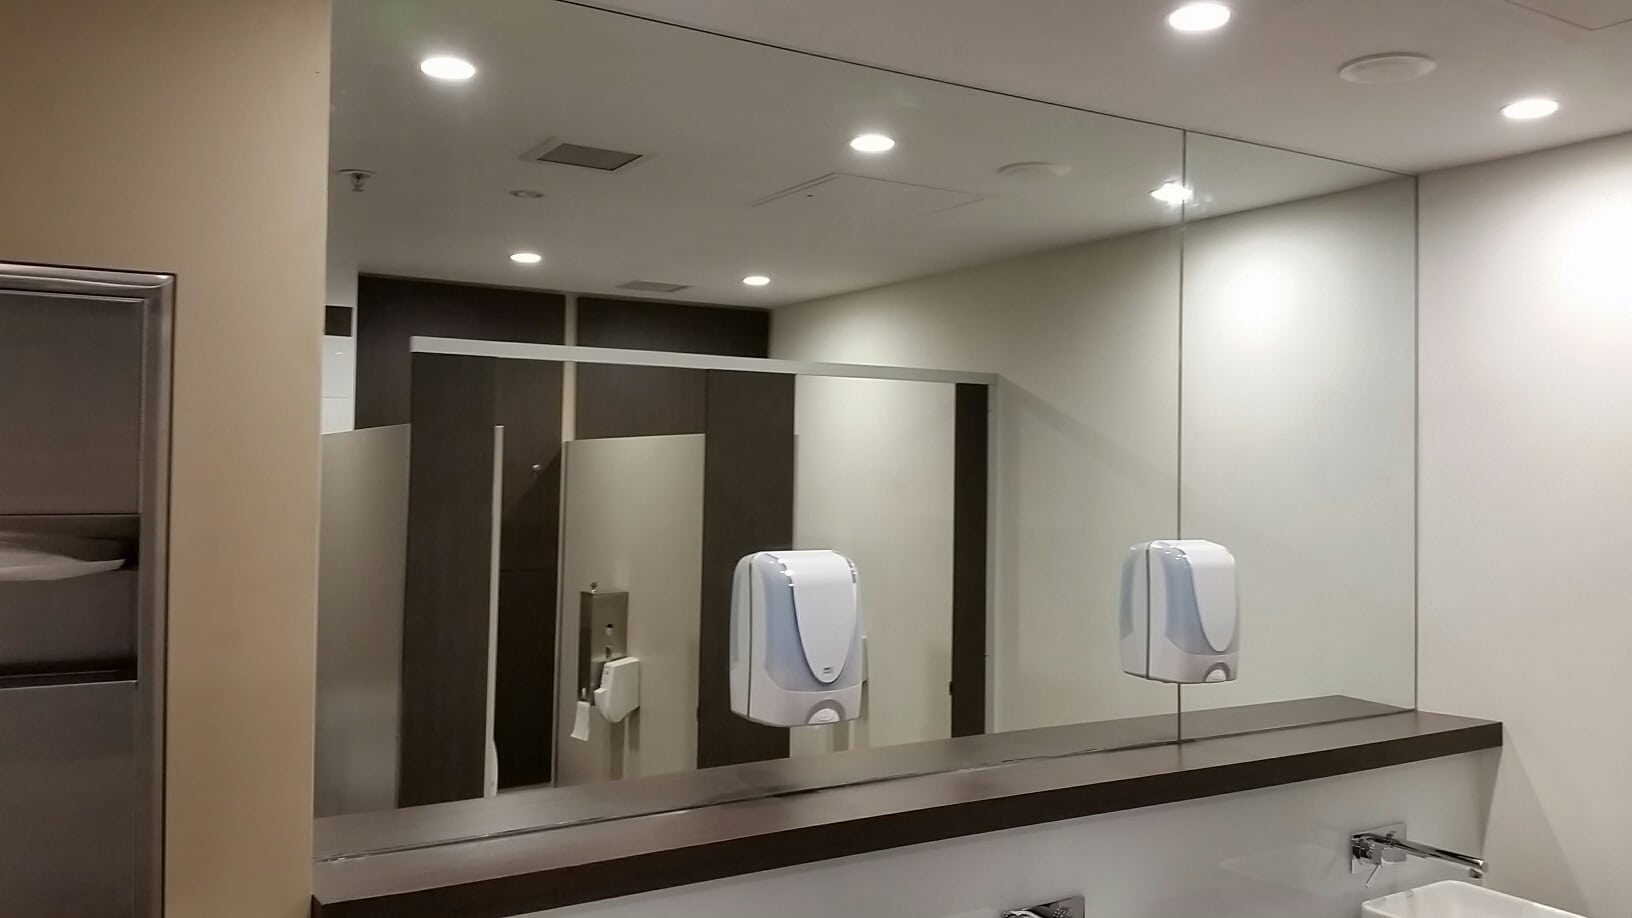 amenities mirror by graphic glass services custom mirrors shower screens and aluminium sliding